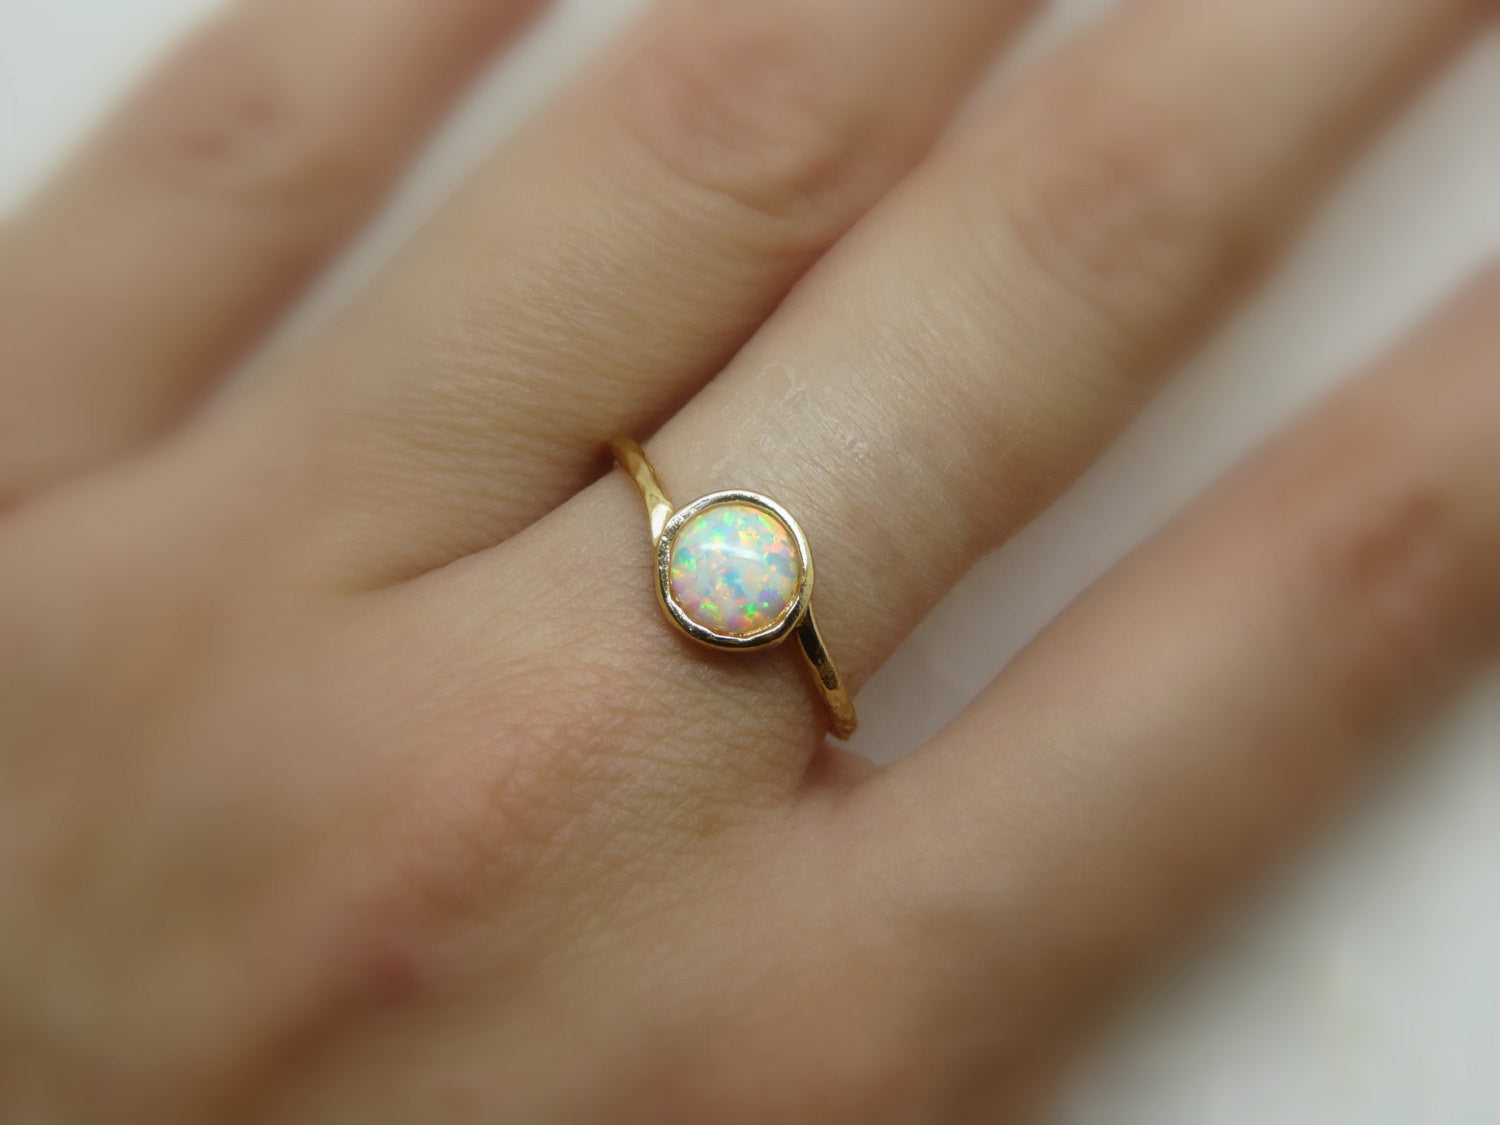 Gold Filled opal ring - OpaLandJewelry